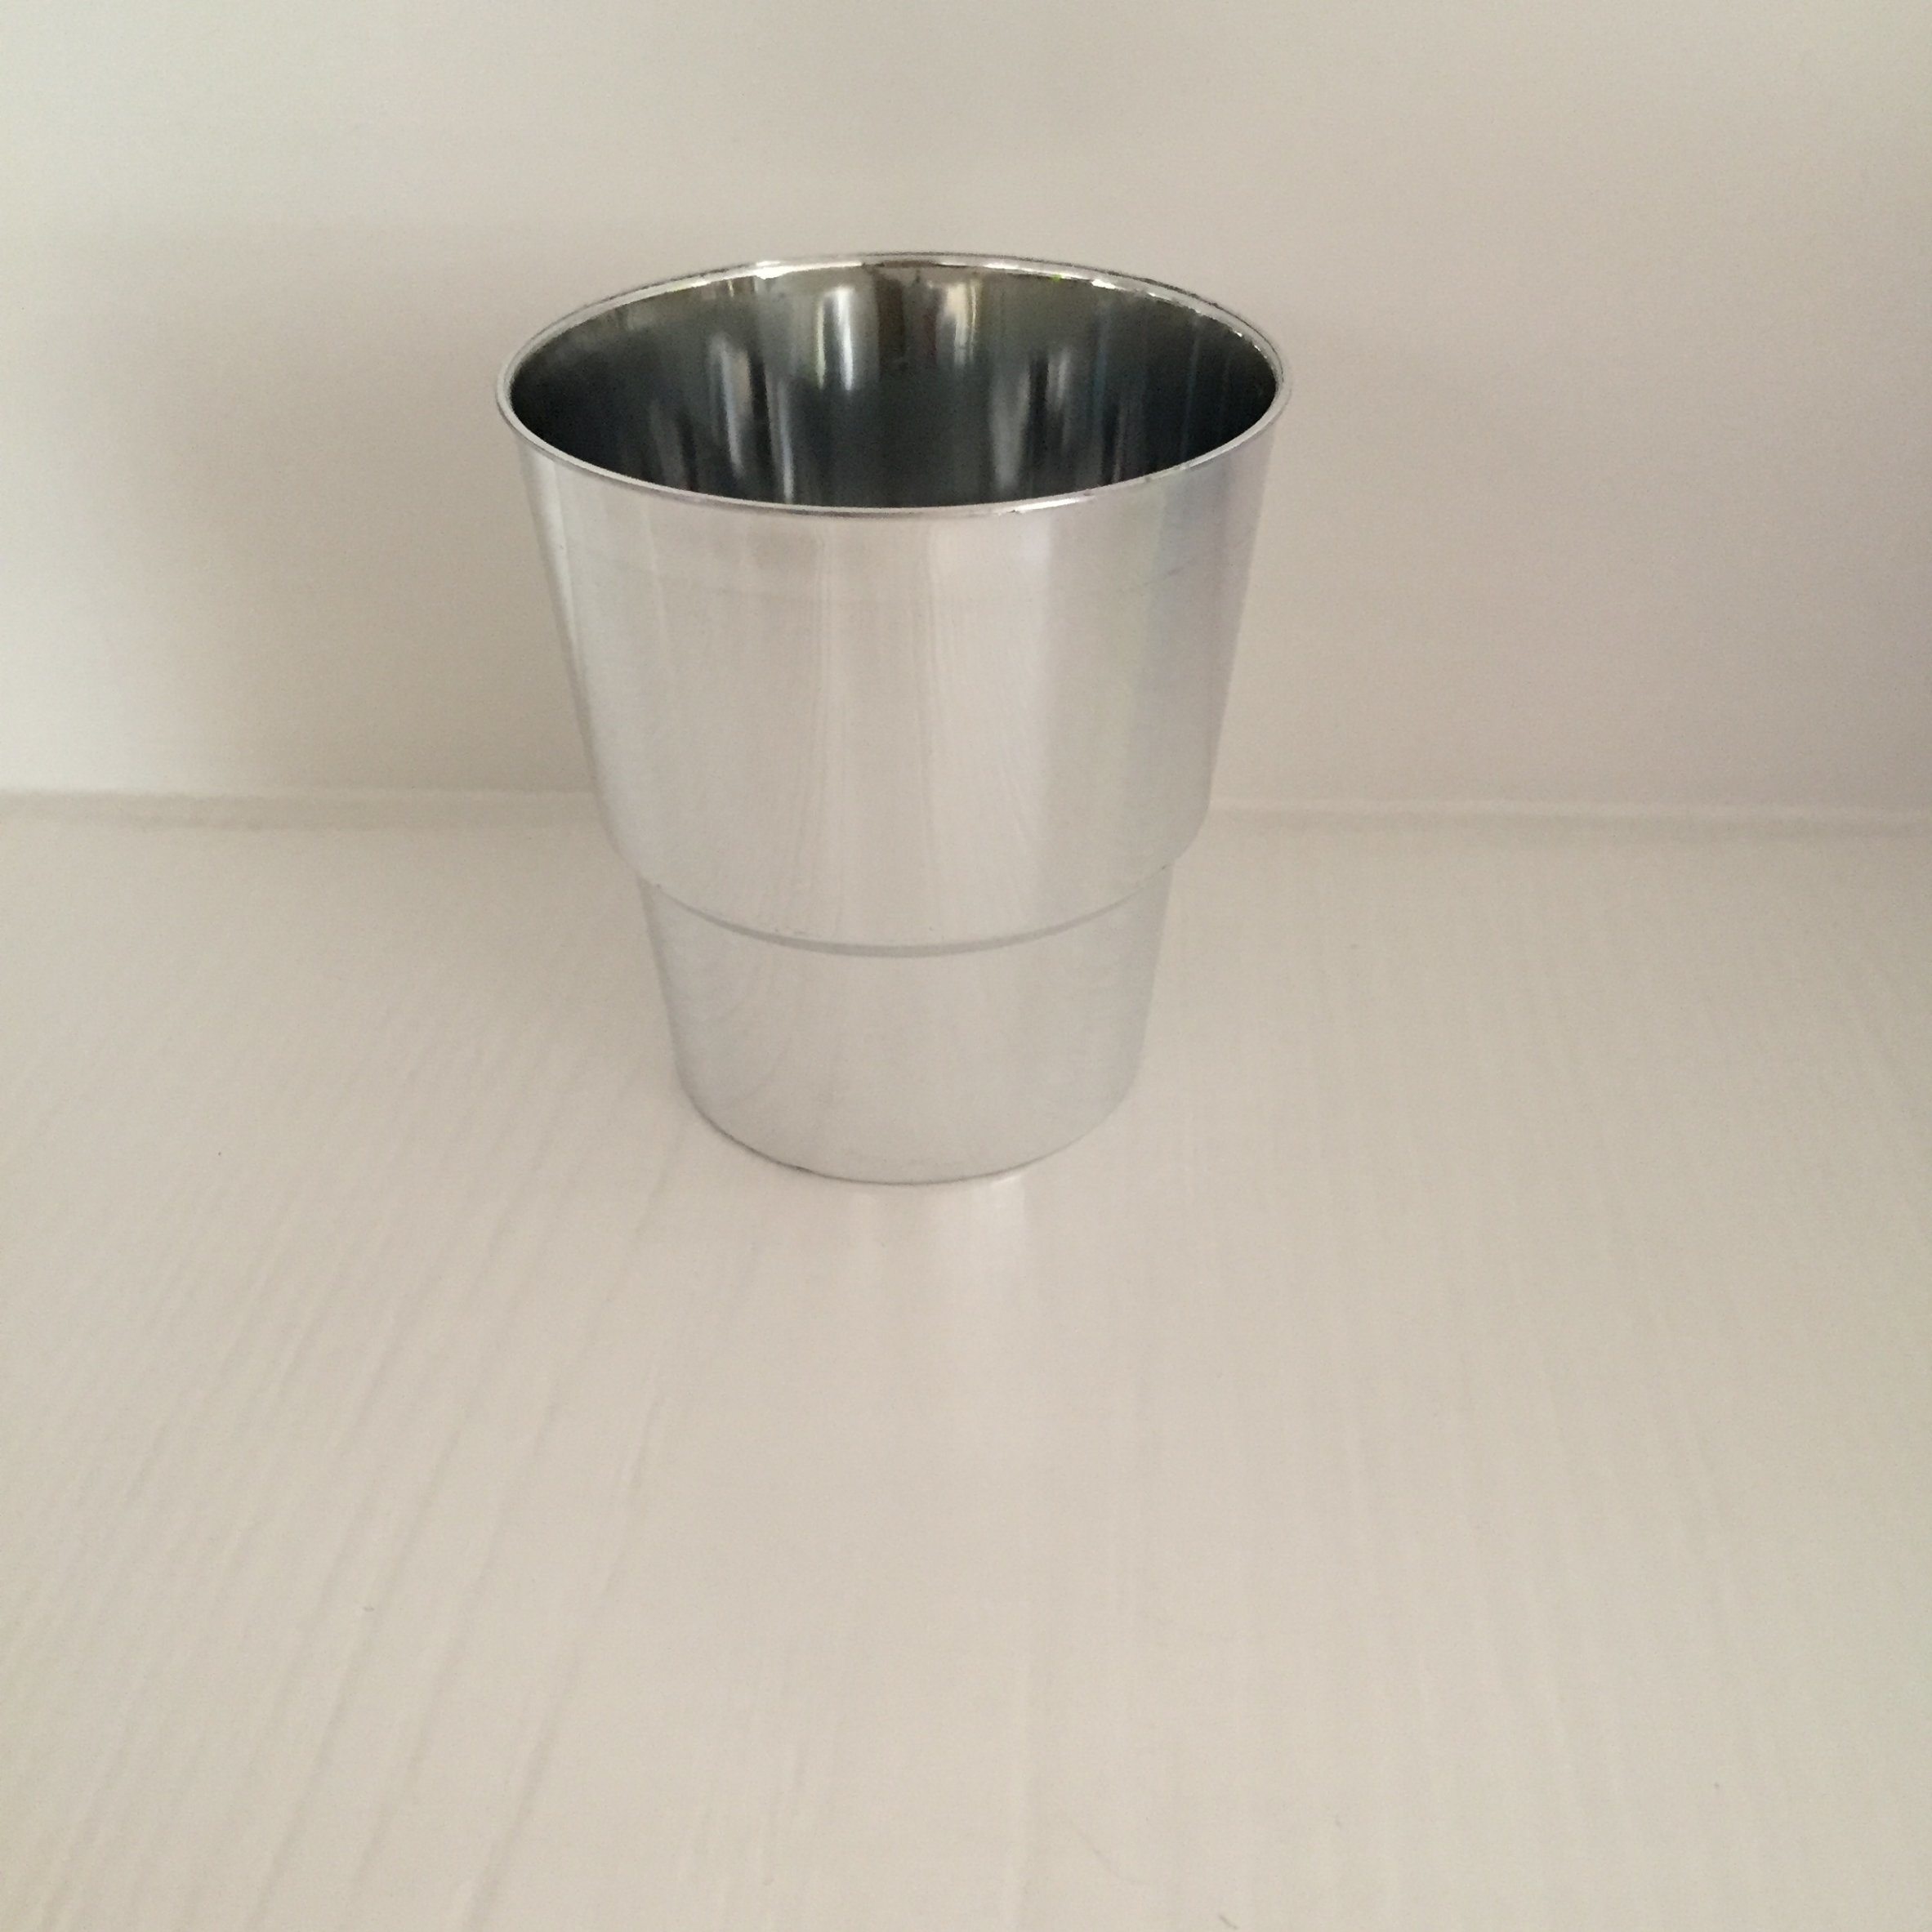 Plastic Cup, Glass, Mug, Tableware, PS, Disposable, Golden, Silver Cup